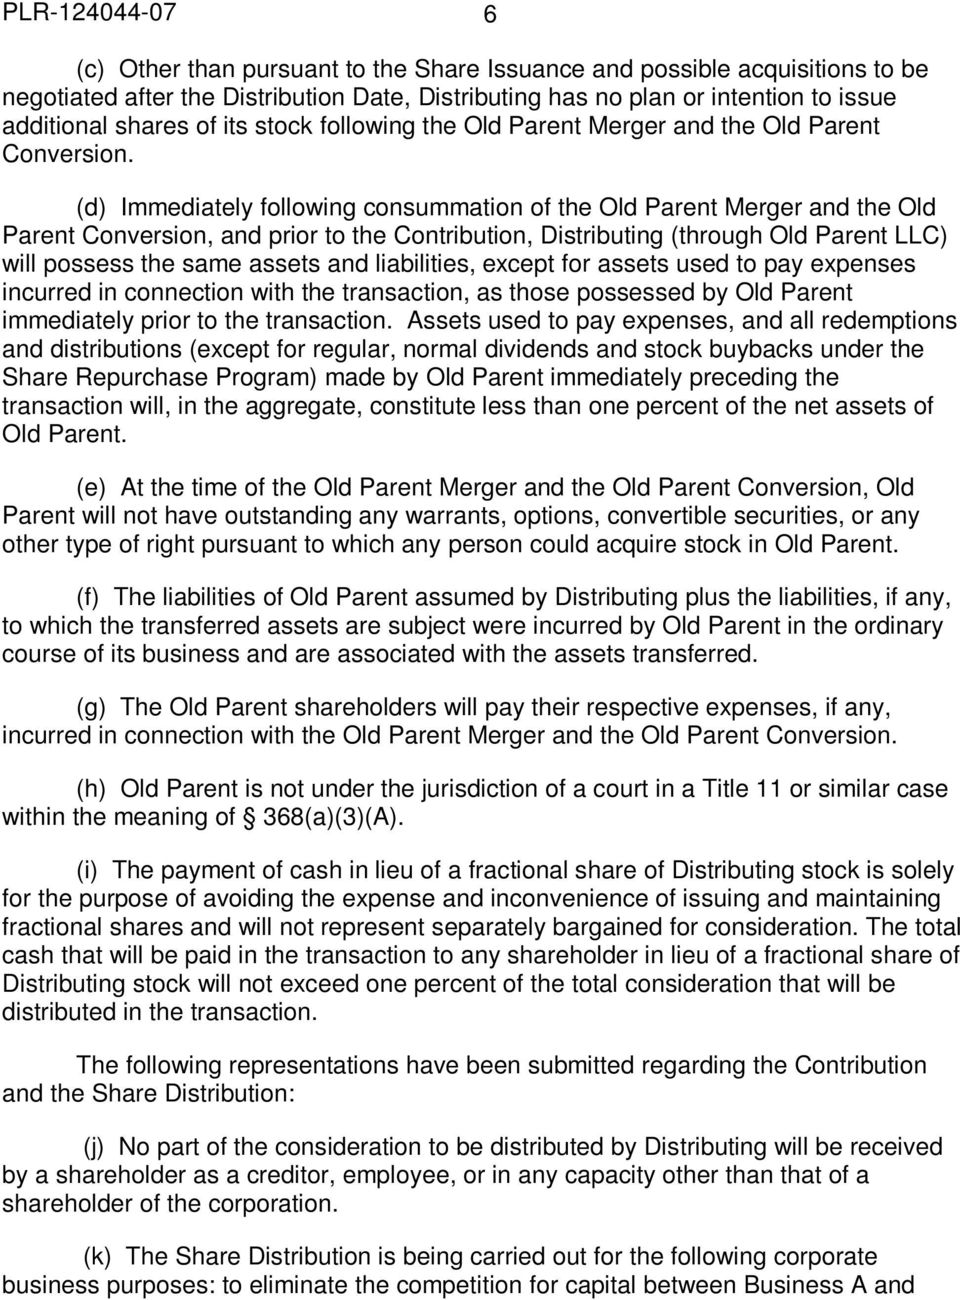 (d) Immediately following consummation of the Old Parent Merger and the Old Parent Conversion, and prior to the Contribution, Distributing (through Old Parent LLC) will possess the same assets and